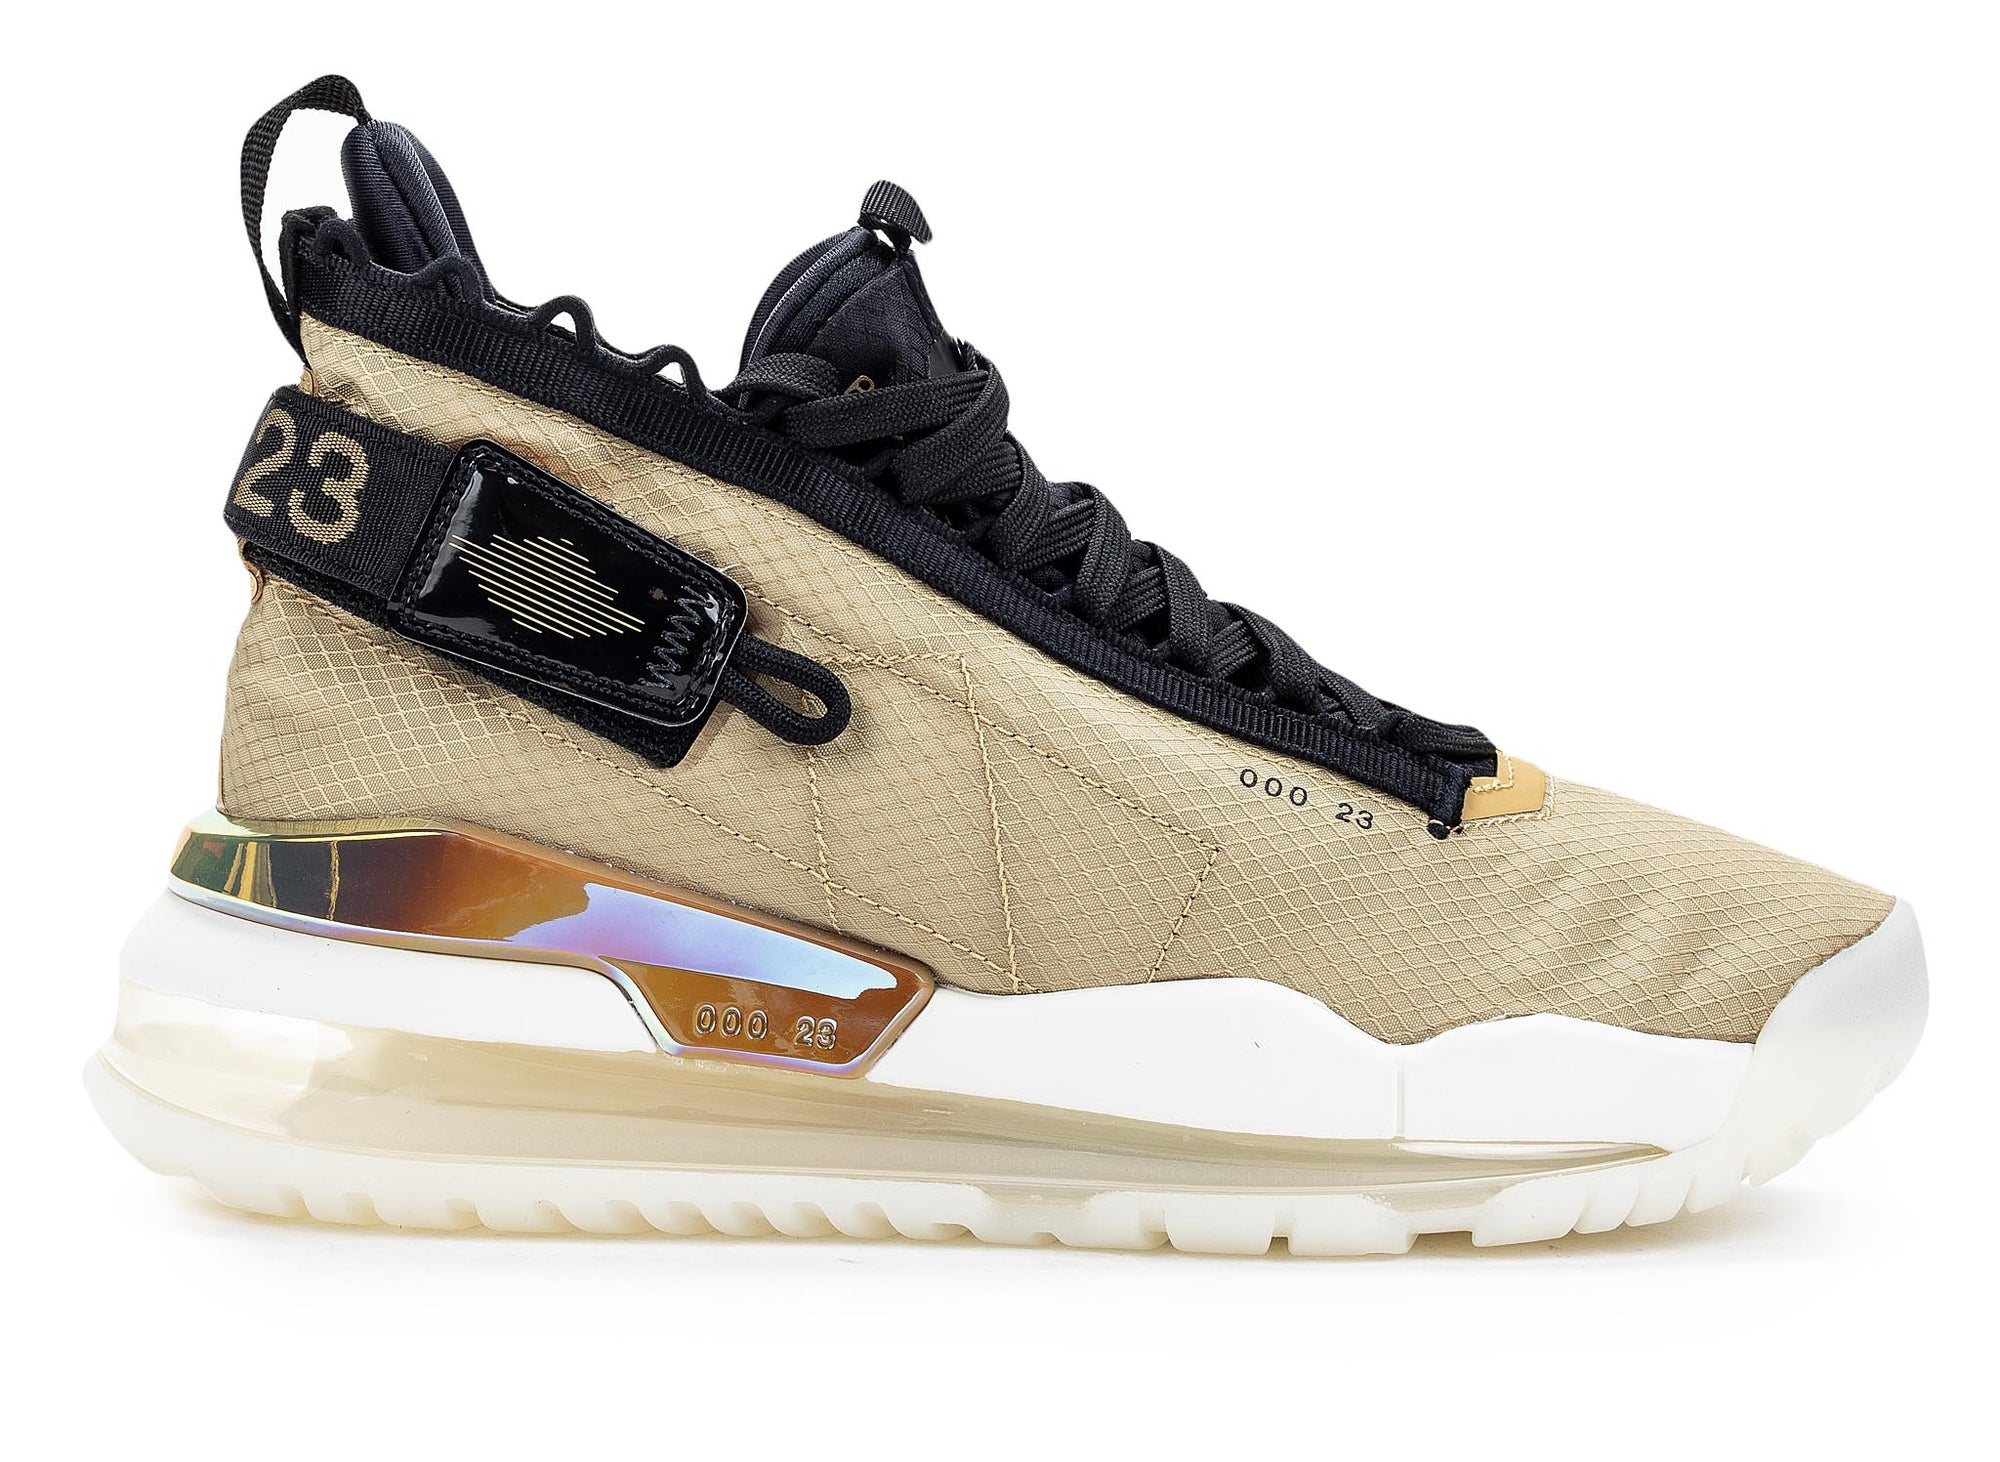 Jordan Proto Max 720 'Club Gold' Oneness Boutique